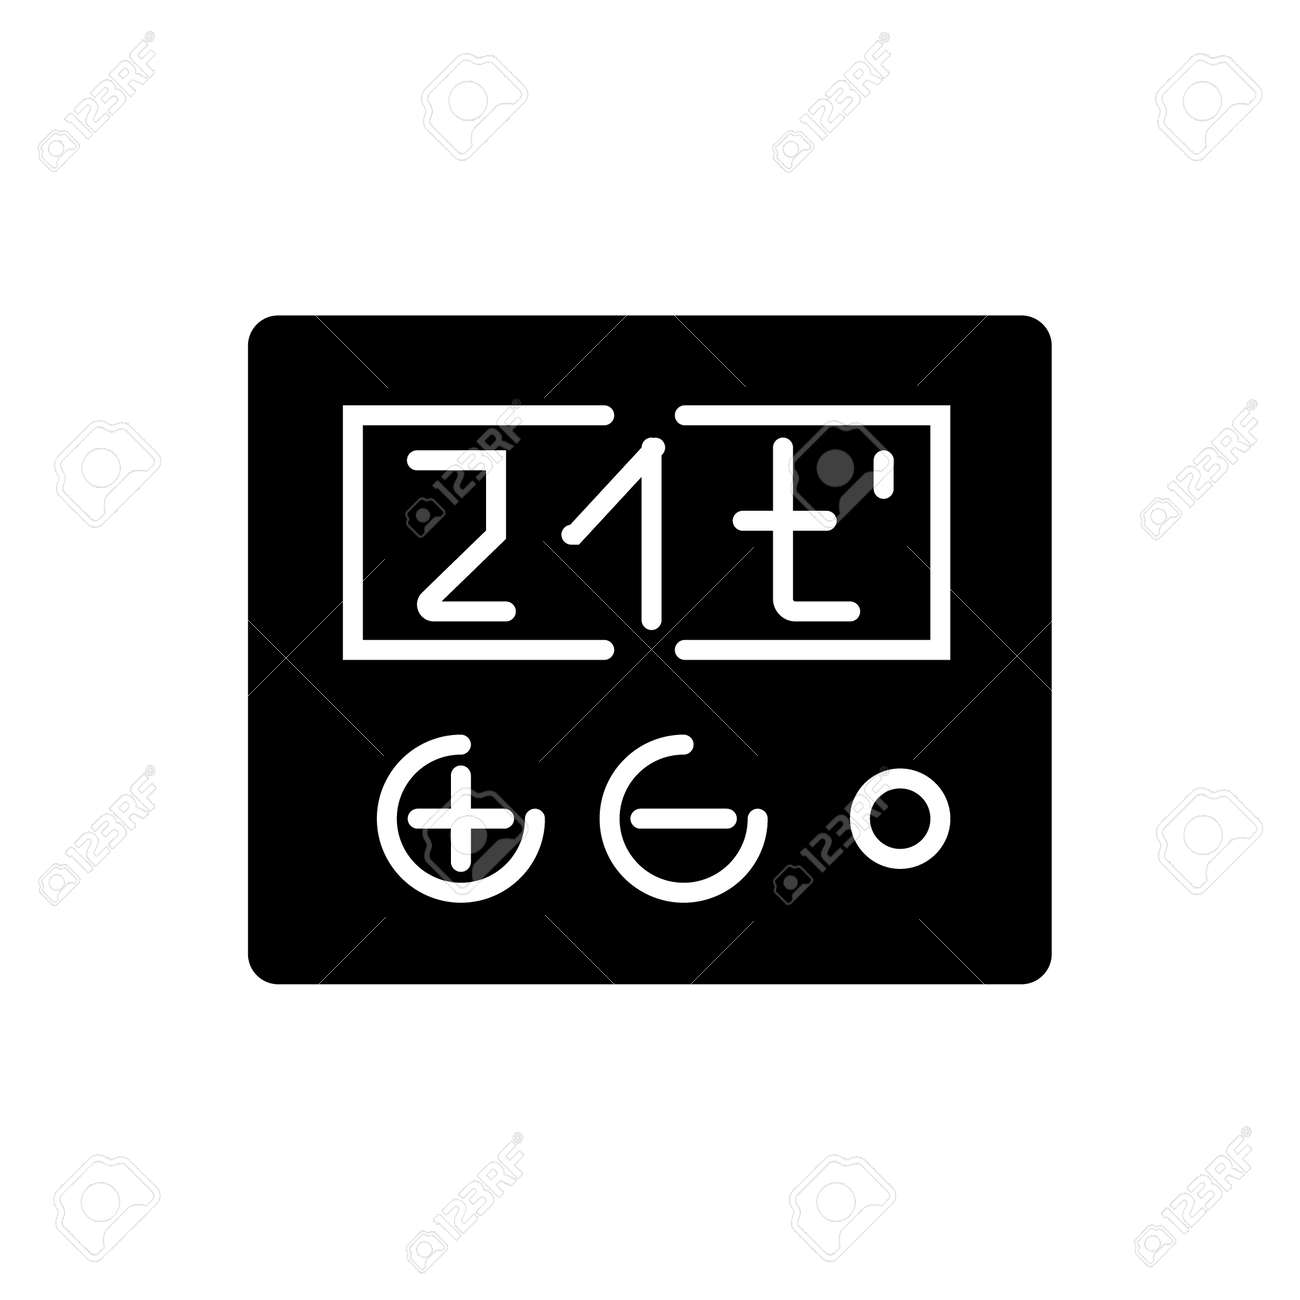 thermostat icon illustration vector sign on isolated background